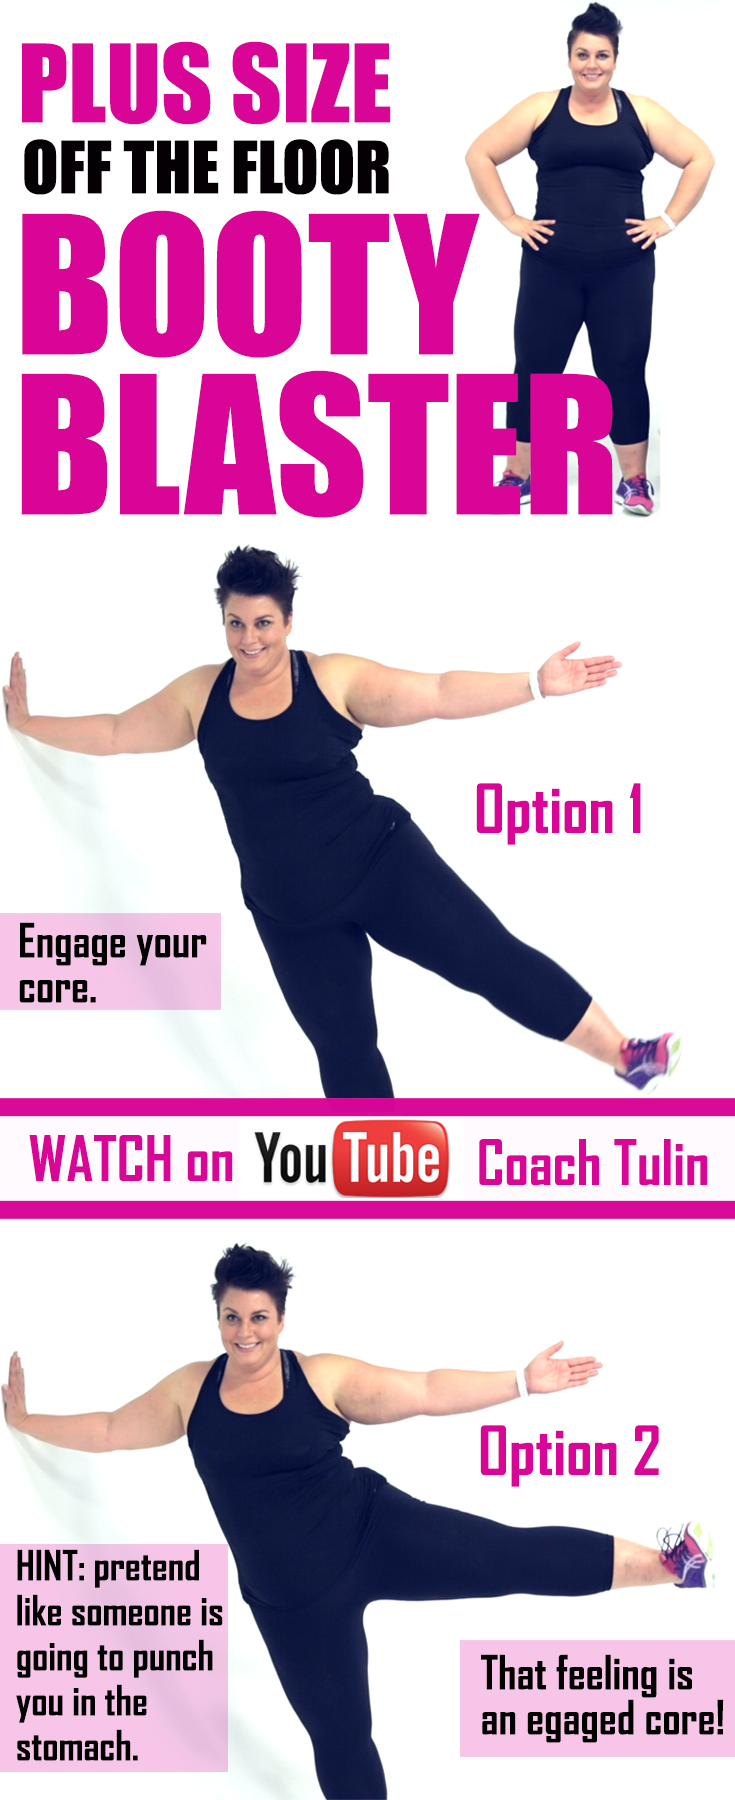 The idea or a side plank in yoga, pilates, or PIYO was not possible when I started, however, not impossible! Building your core and booty doesn't have to happen on the floor. Using a wall or even standing up right while holding on to the back of a chair a http://www.erodethefat.com/blog/lean-belly/